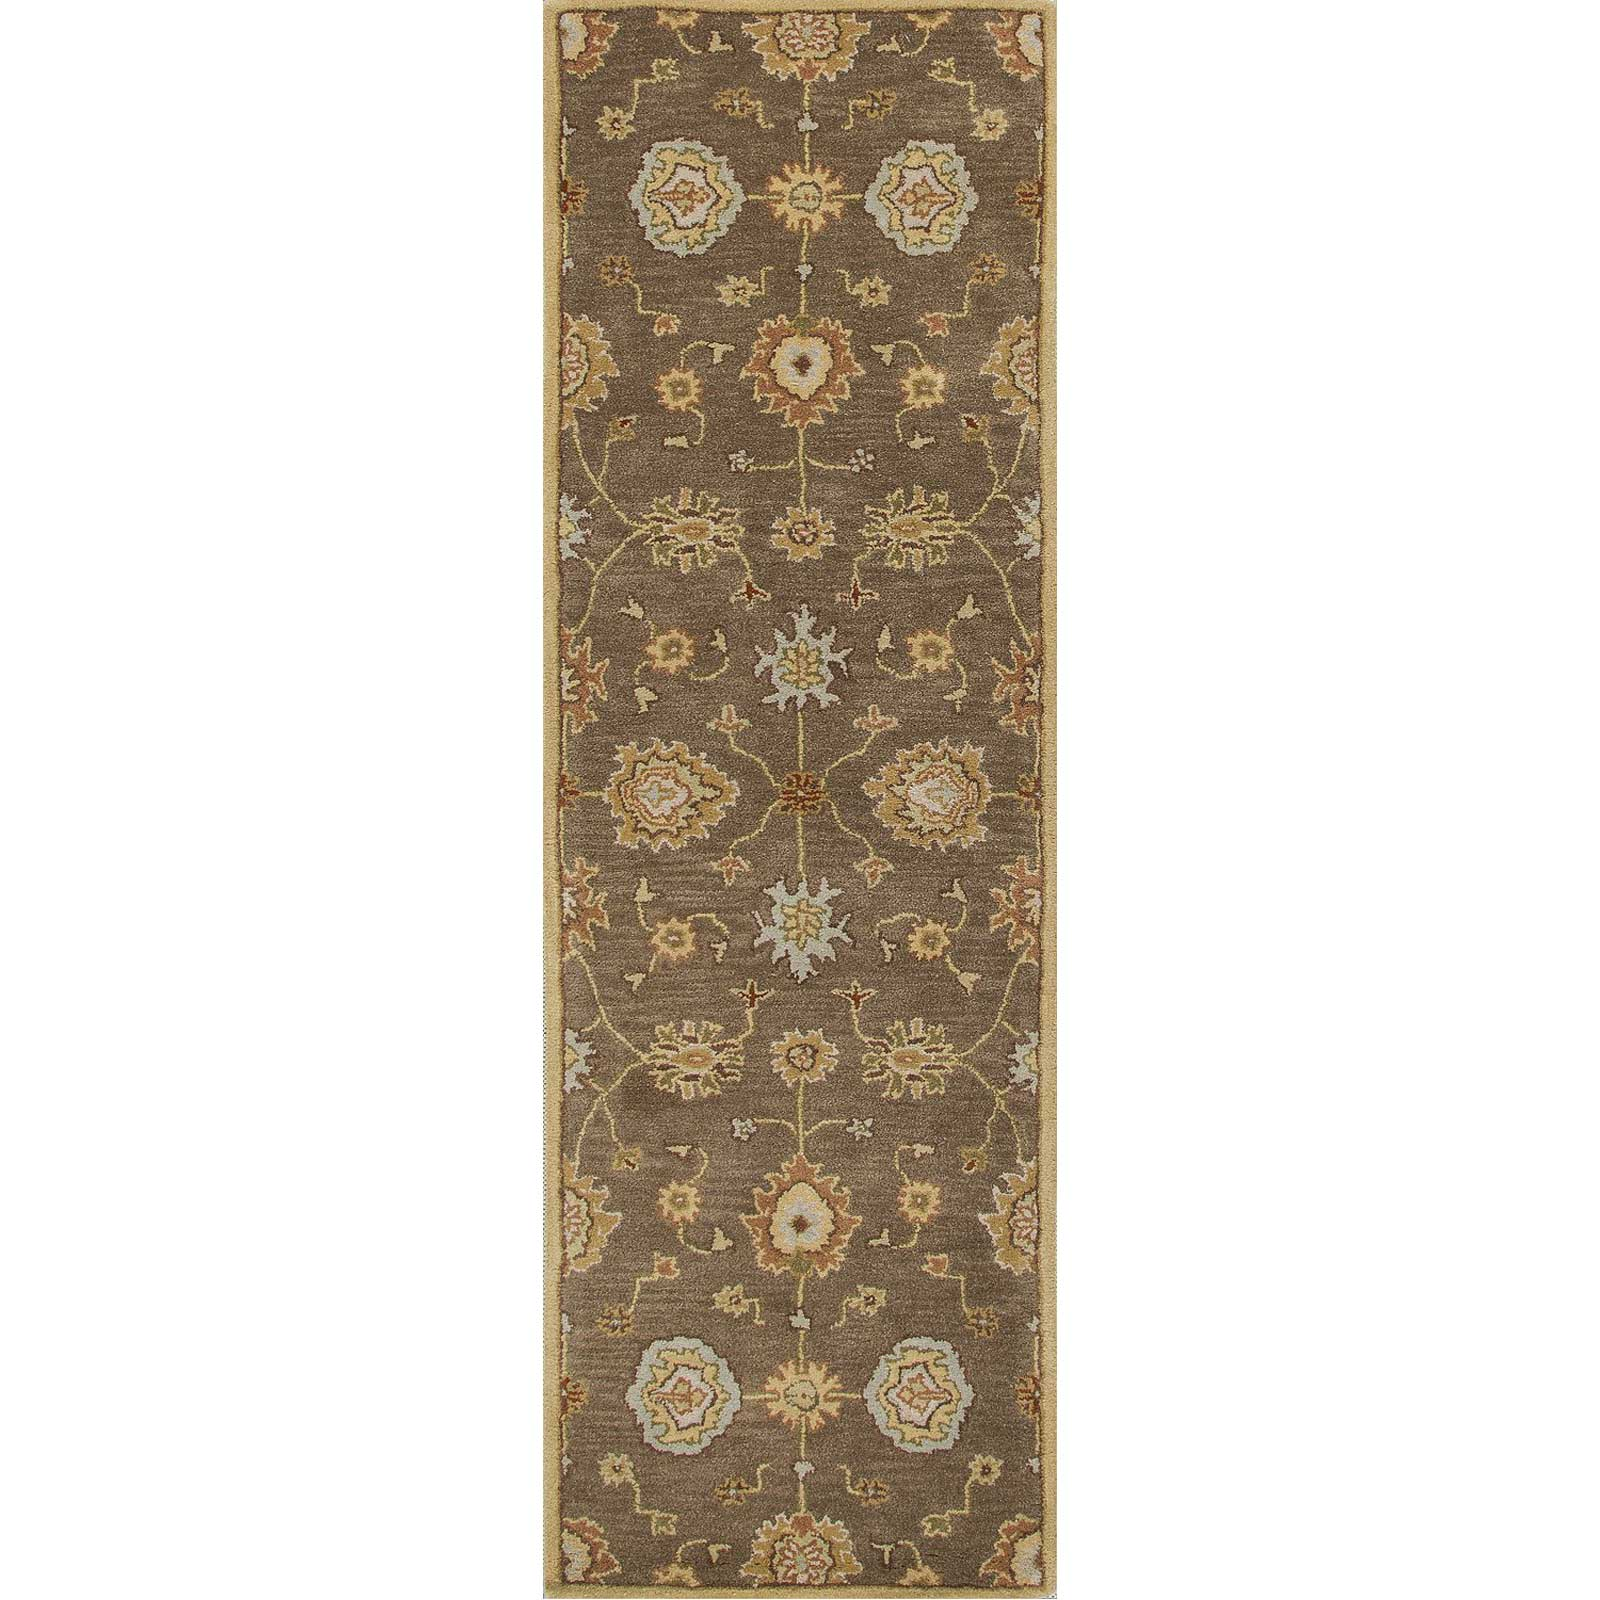 Poeme Nantes Gray Brown Runner Rug